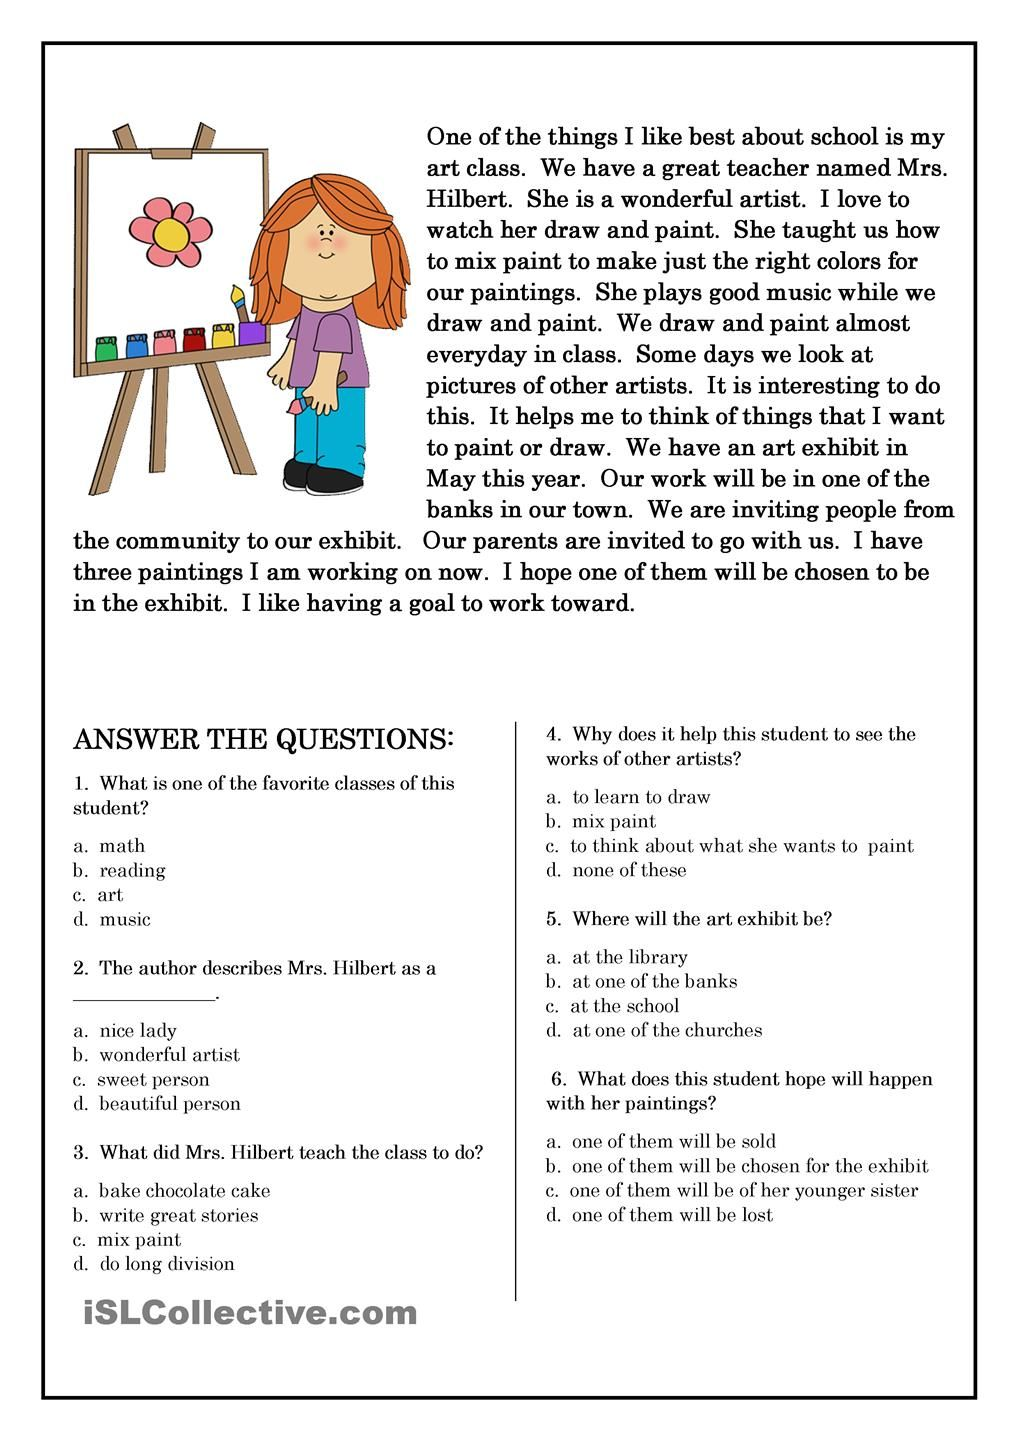 Worksheet Reading Exercise For Grade 1 1000 images about ejercicios de ingles on pinterest worksheets vocabulary and reading comprehension